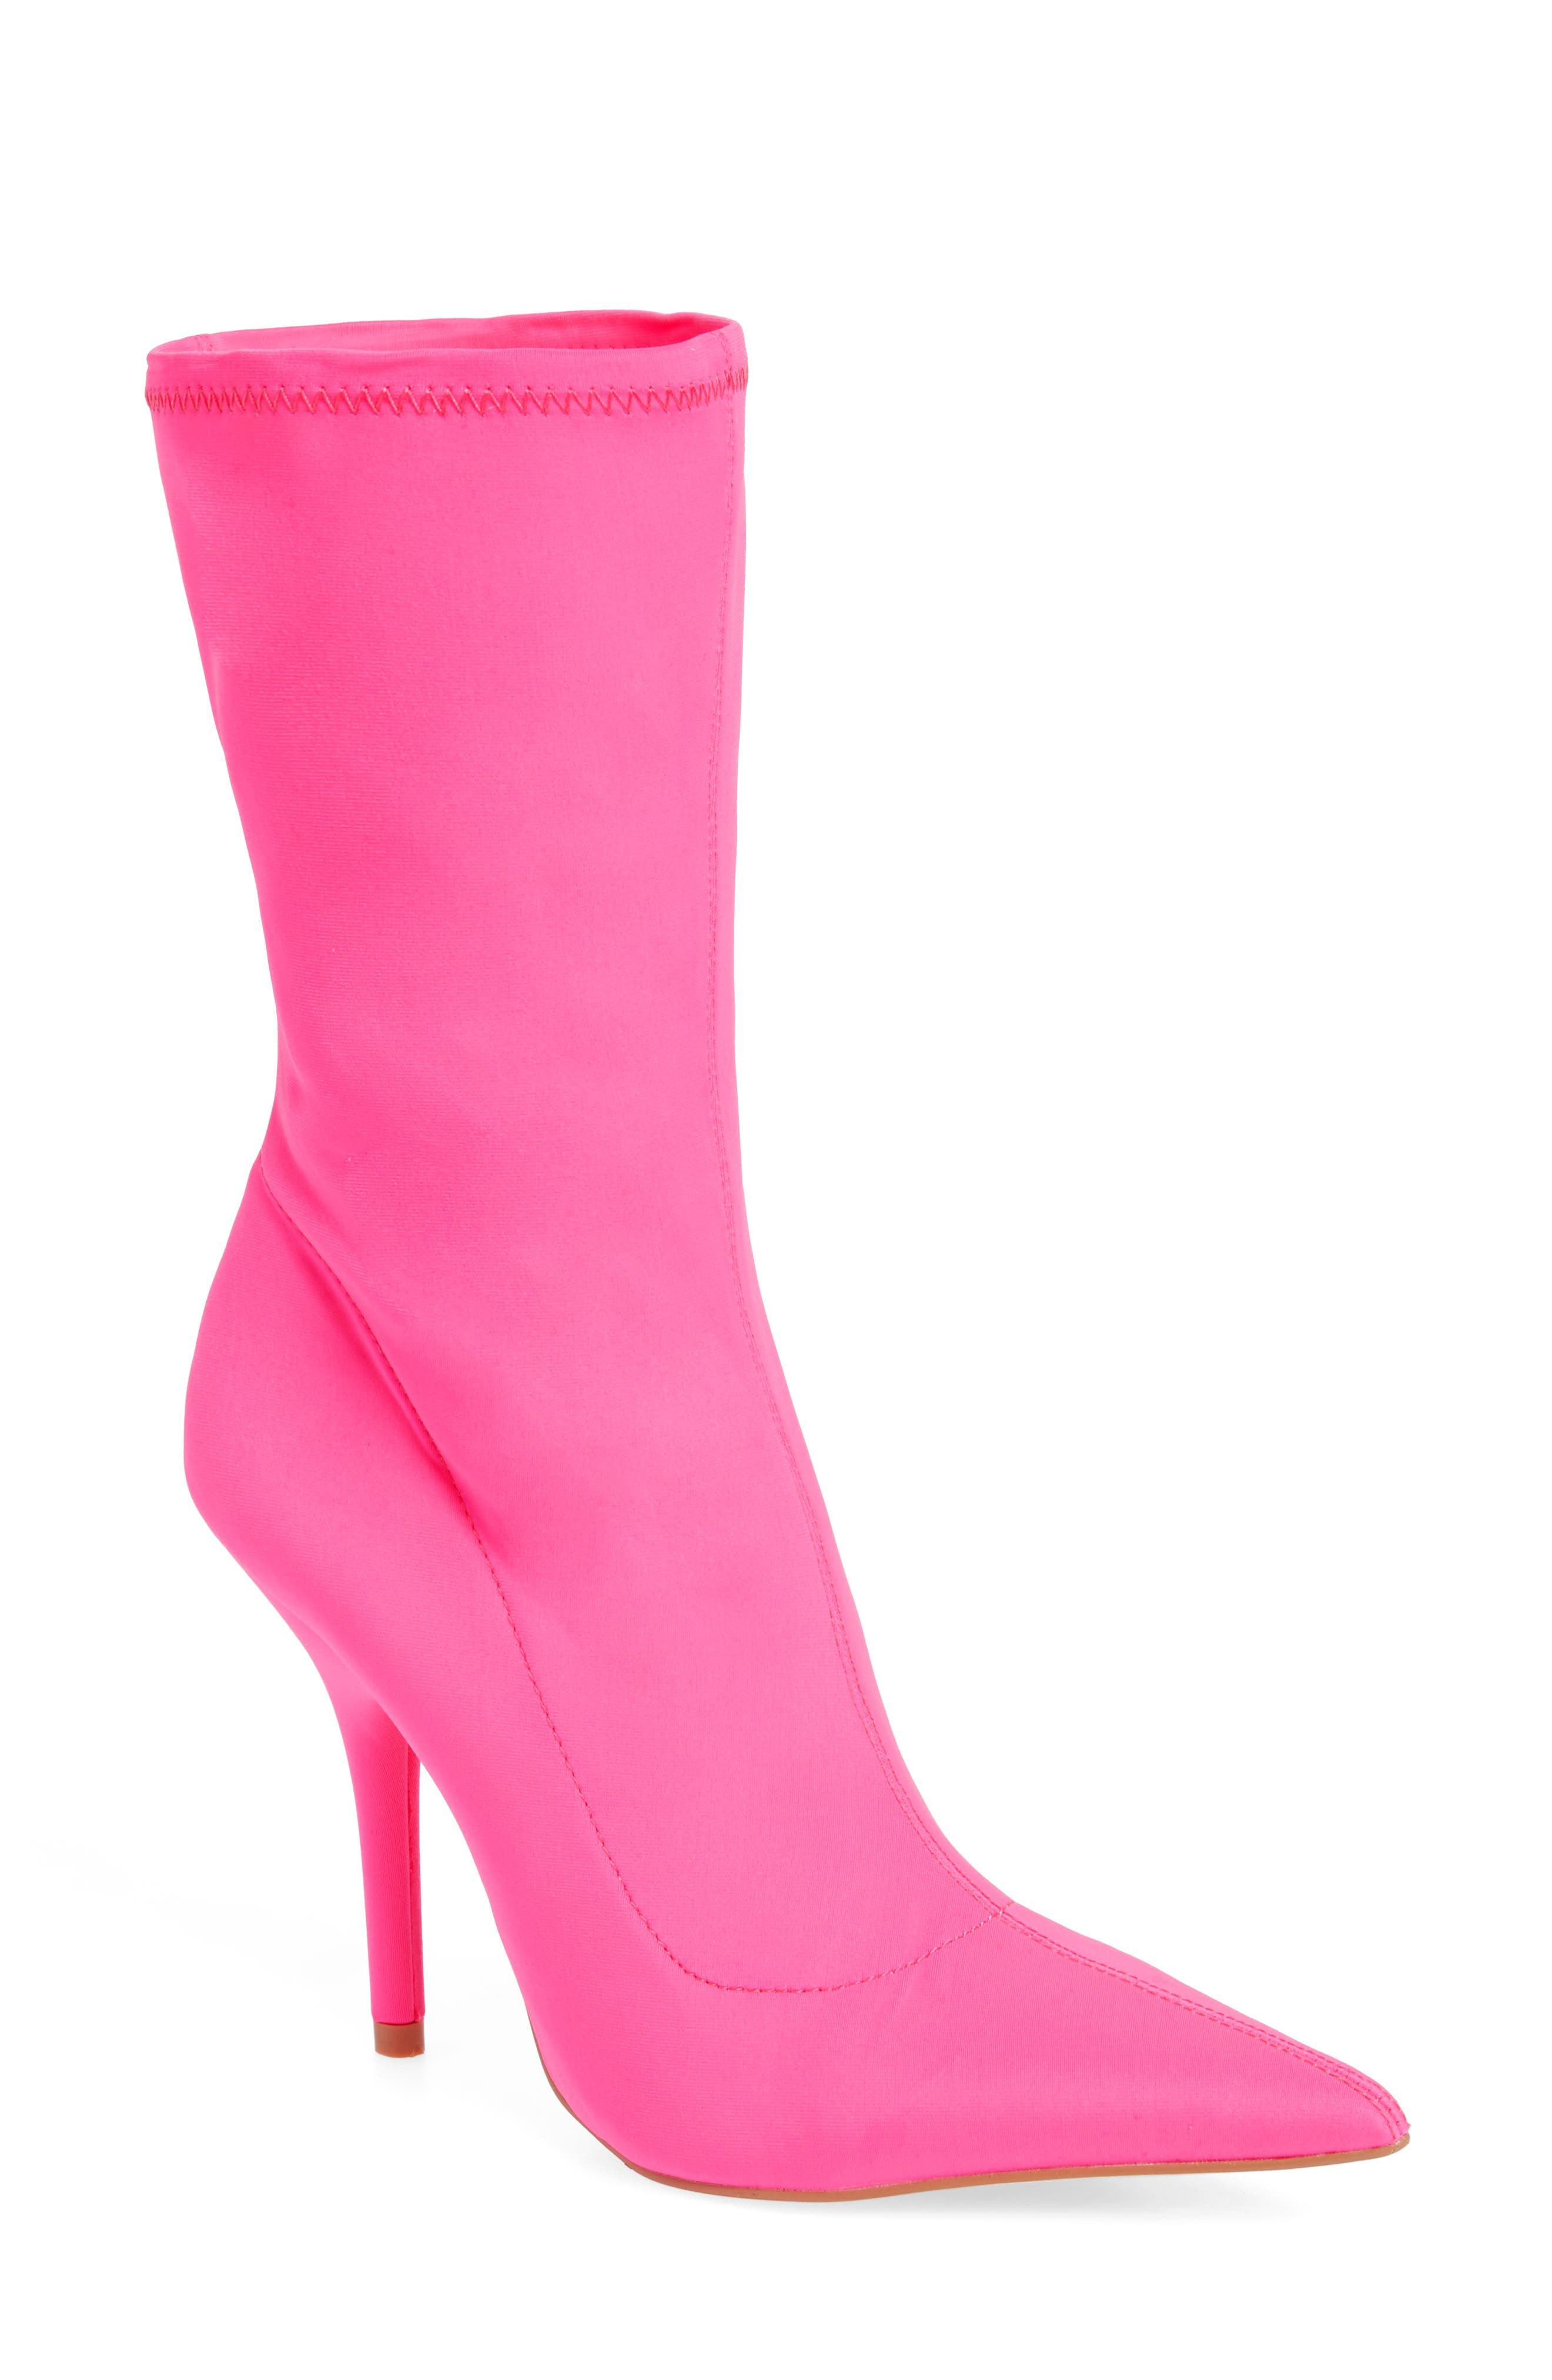 Women's Pink Ankle Boots, Boots for Women | Nordstrom